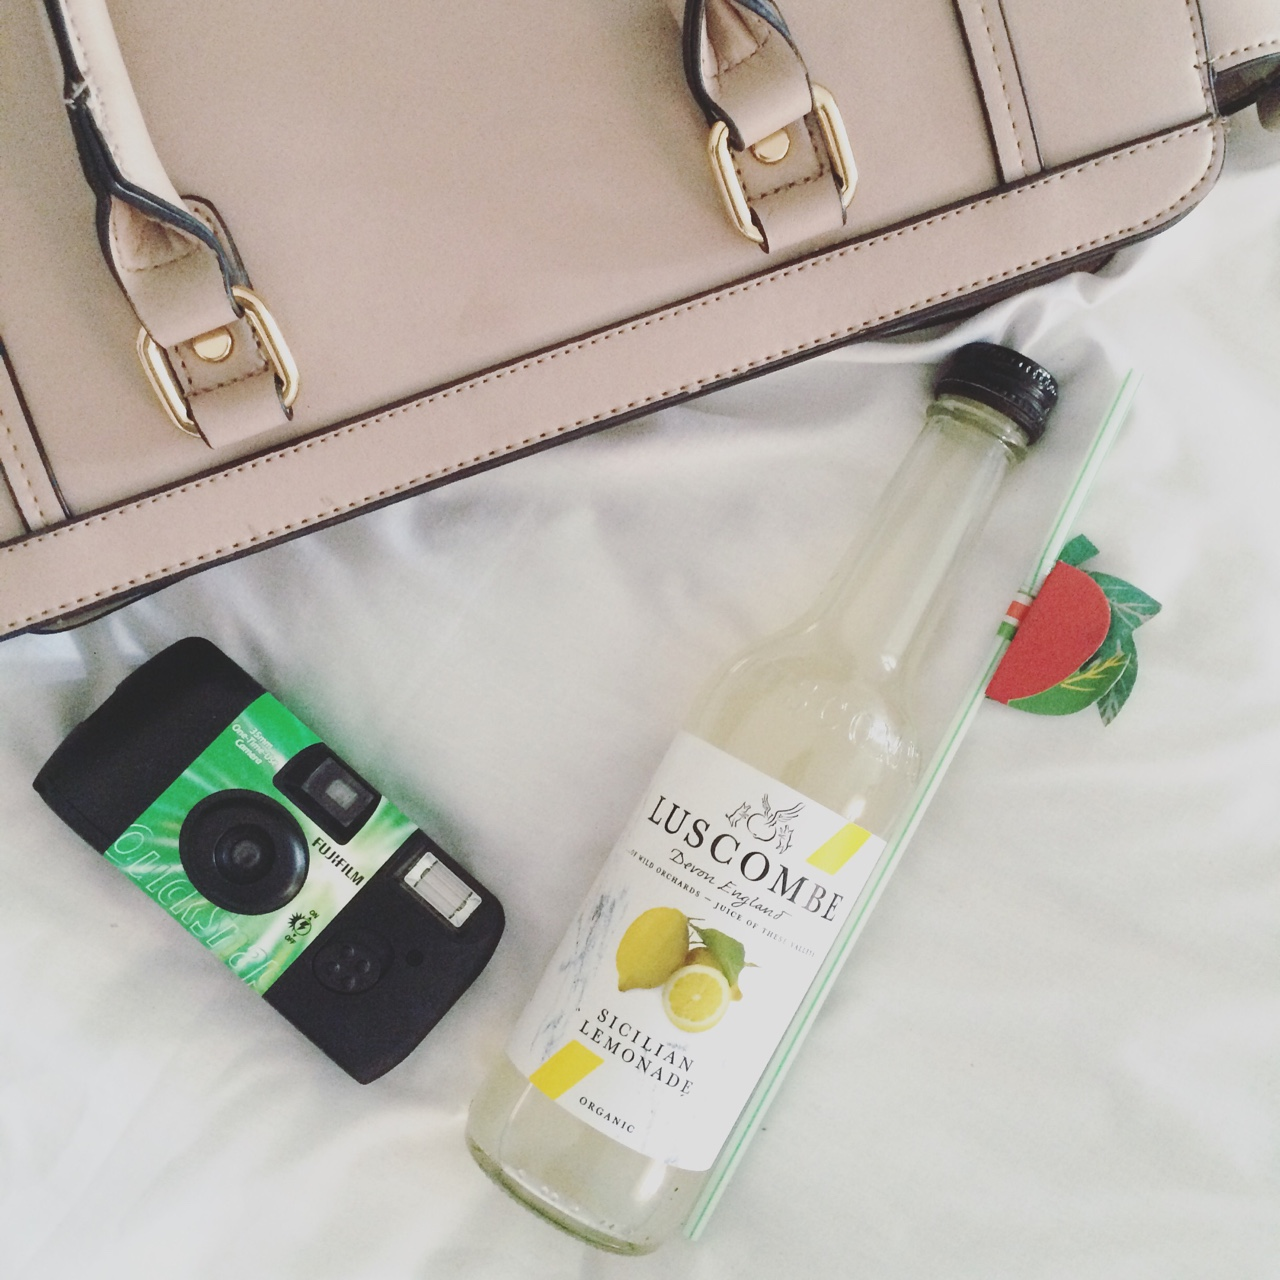 luscombe drinks, lemonade, disposable camera, bag, camera, retro